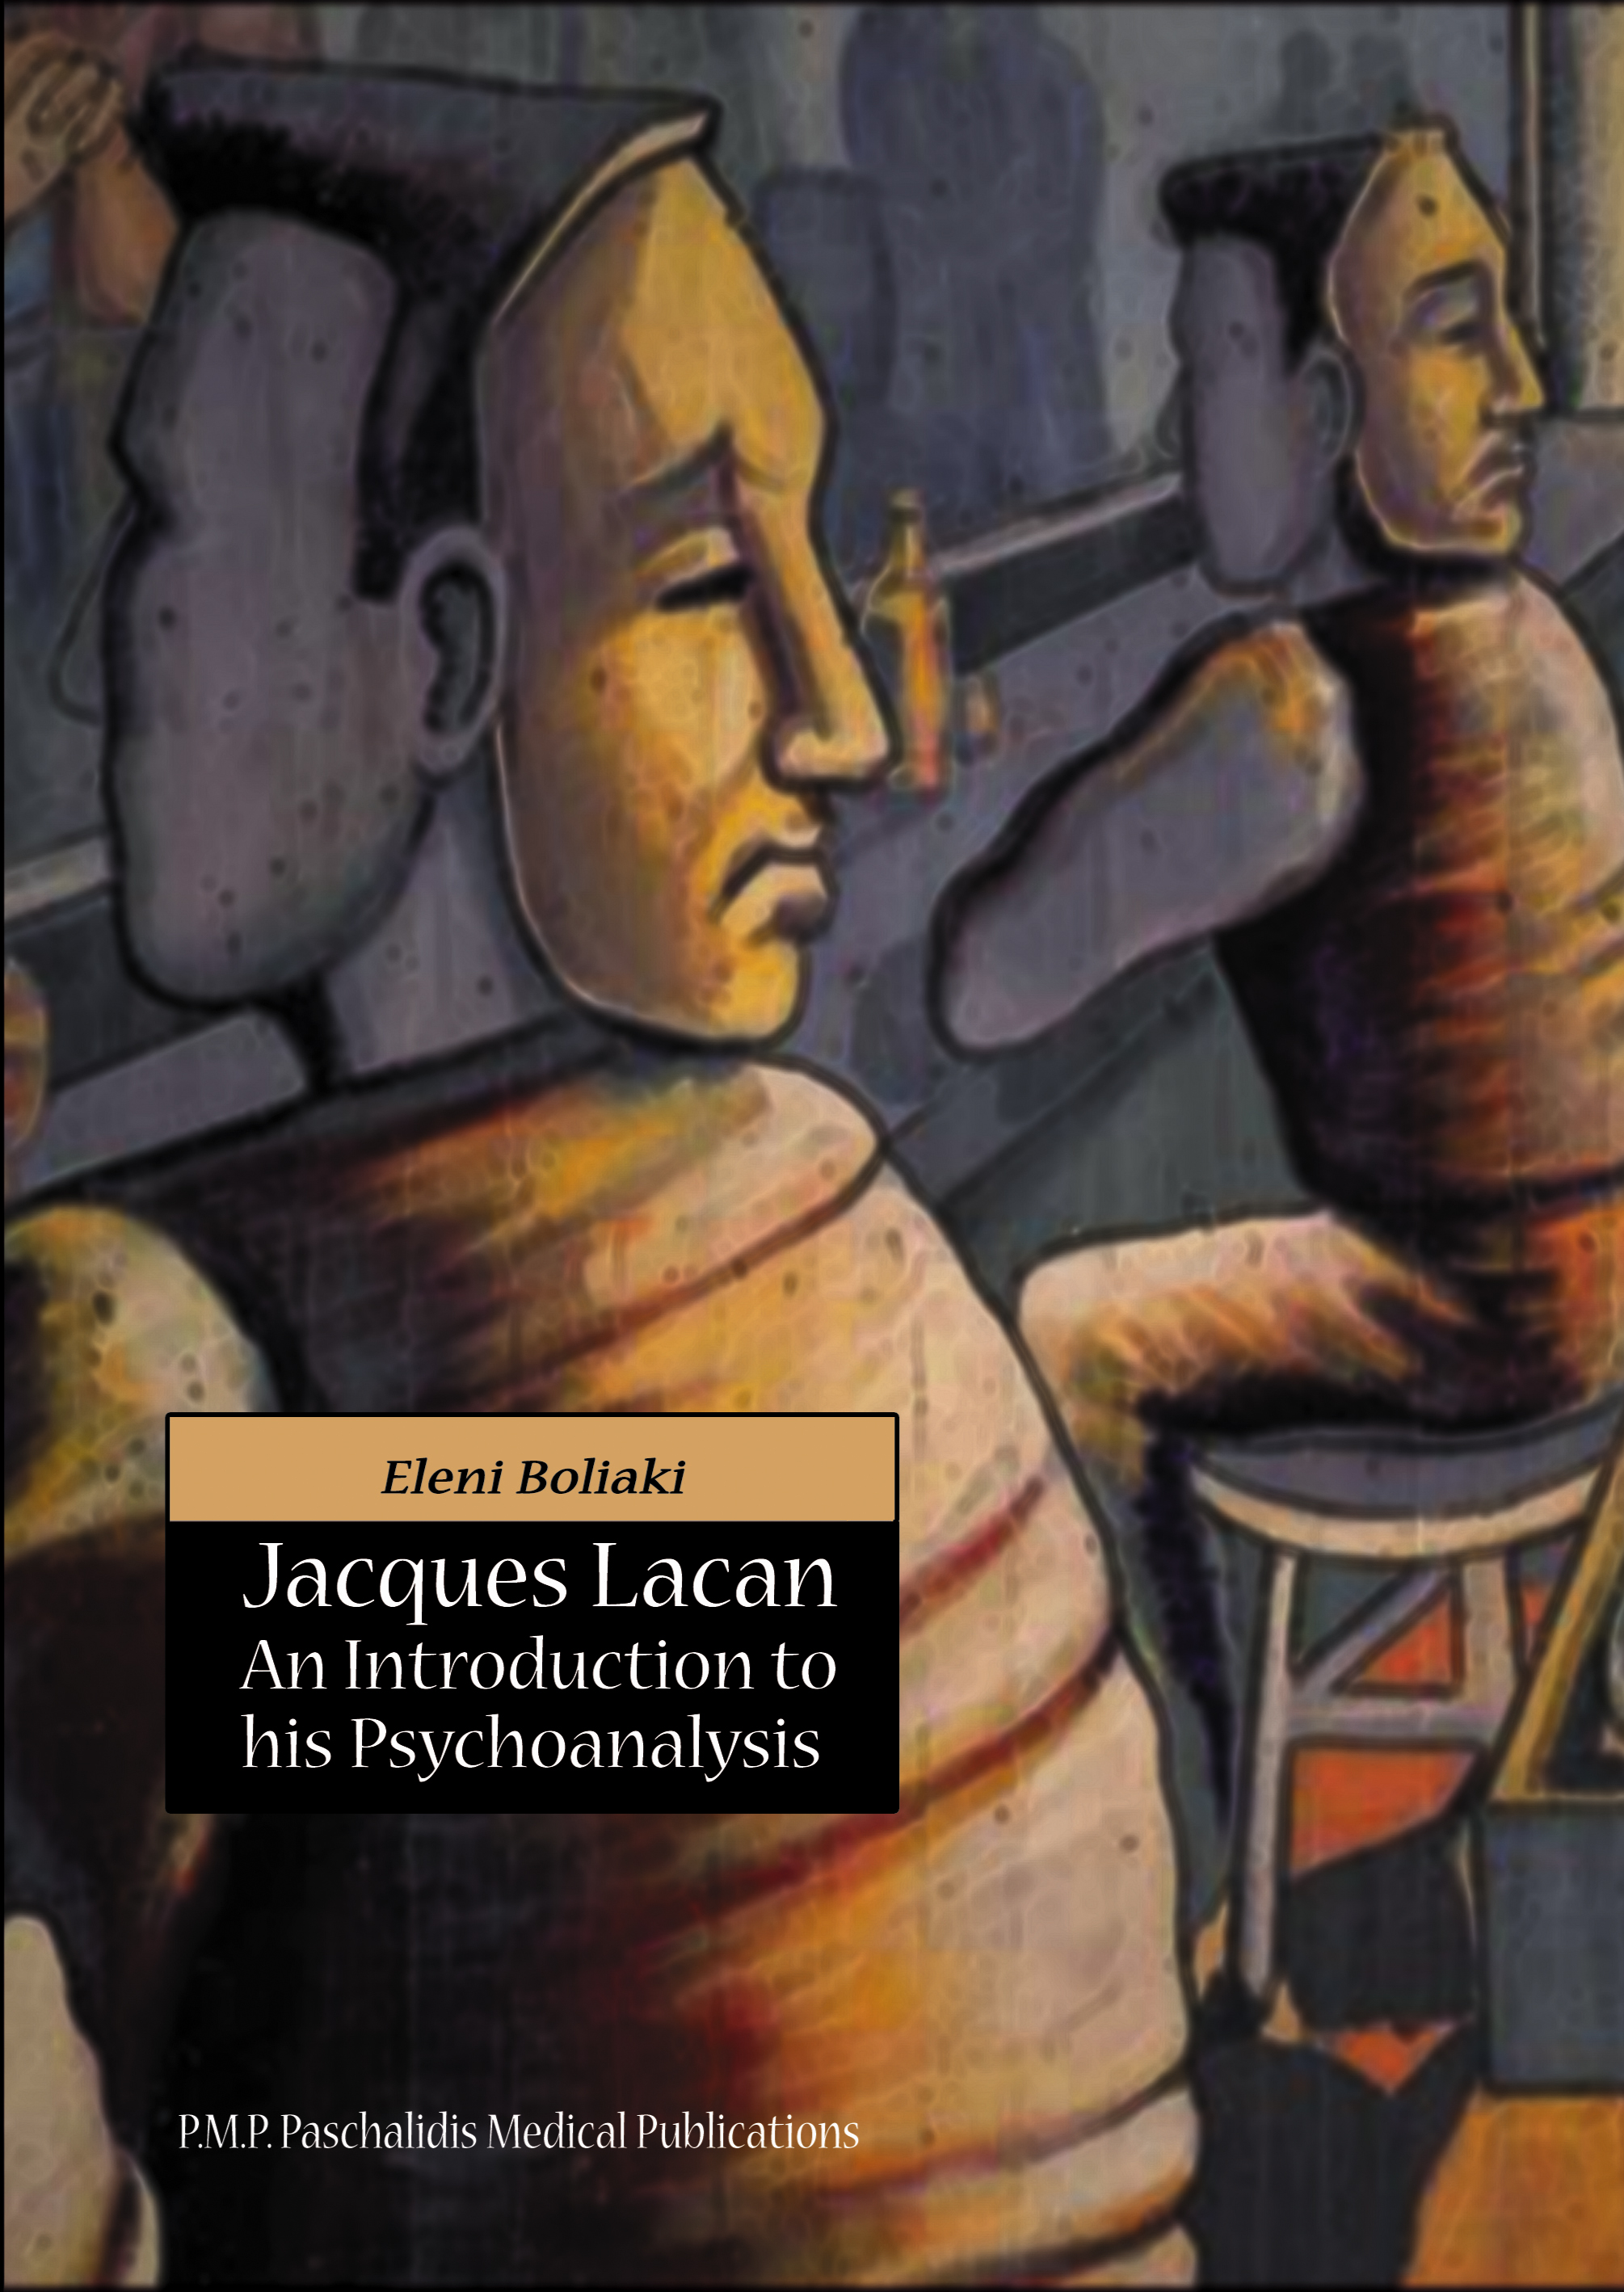 Jacques Lacan: An Introduction to his Psychoanalysis